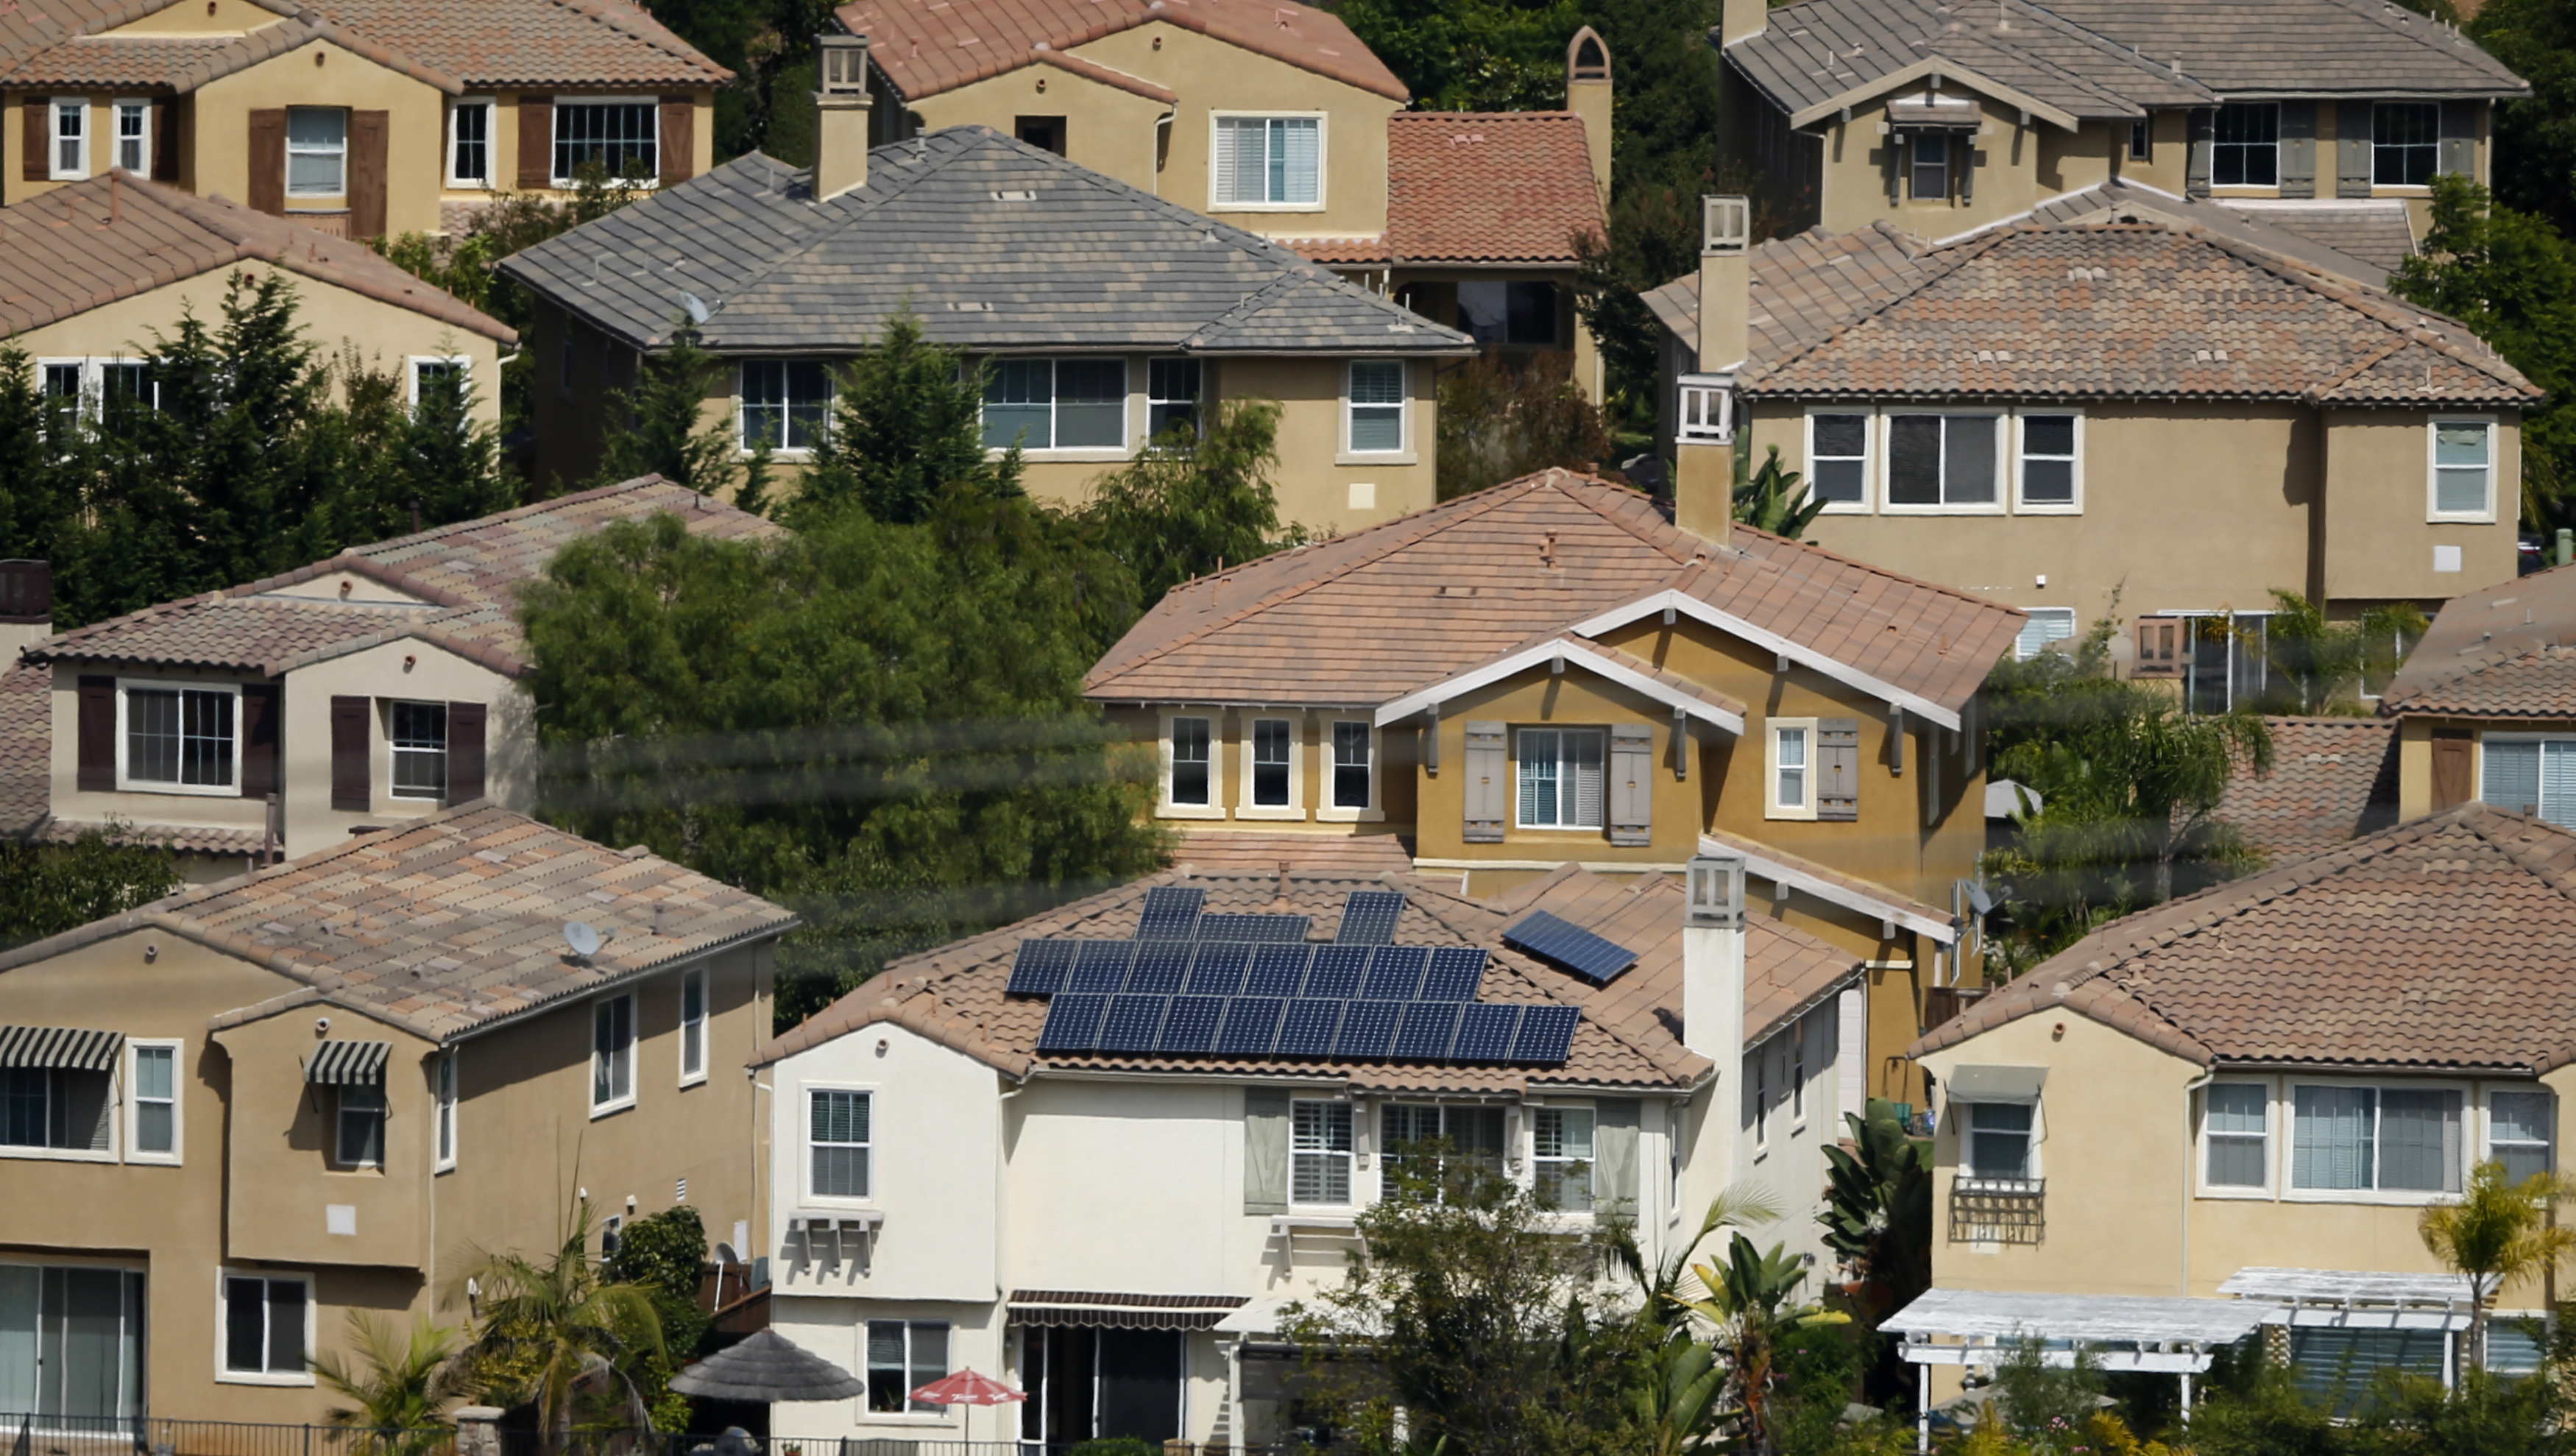 A home with solar panels on its roof is shown in a residential neighborhood in San Marcos, California September 19,2013. Well over 60 percent of solar systems in states like California and Arizona today are owned by a third party and financed, allowing homeowners to go solar by paying a monthly fee for panels instead of shouldering the $20,000 to $30,000 up front cost of a system. Photo taken September 19, 2013.